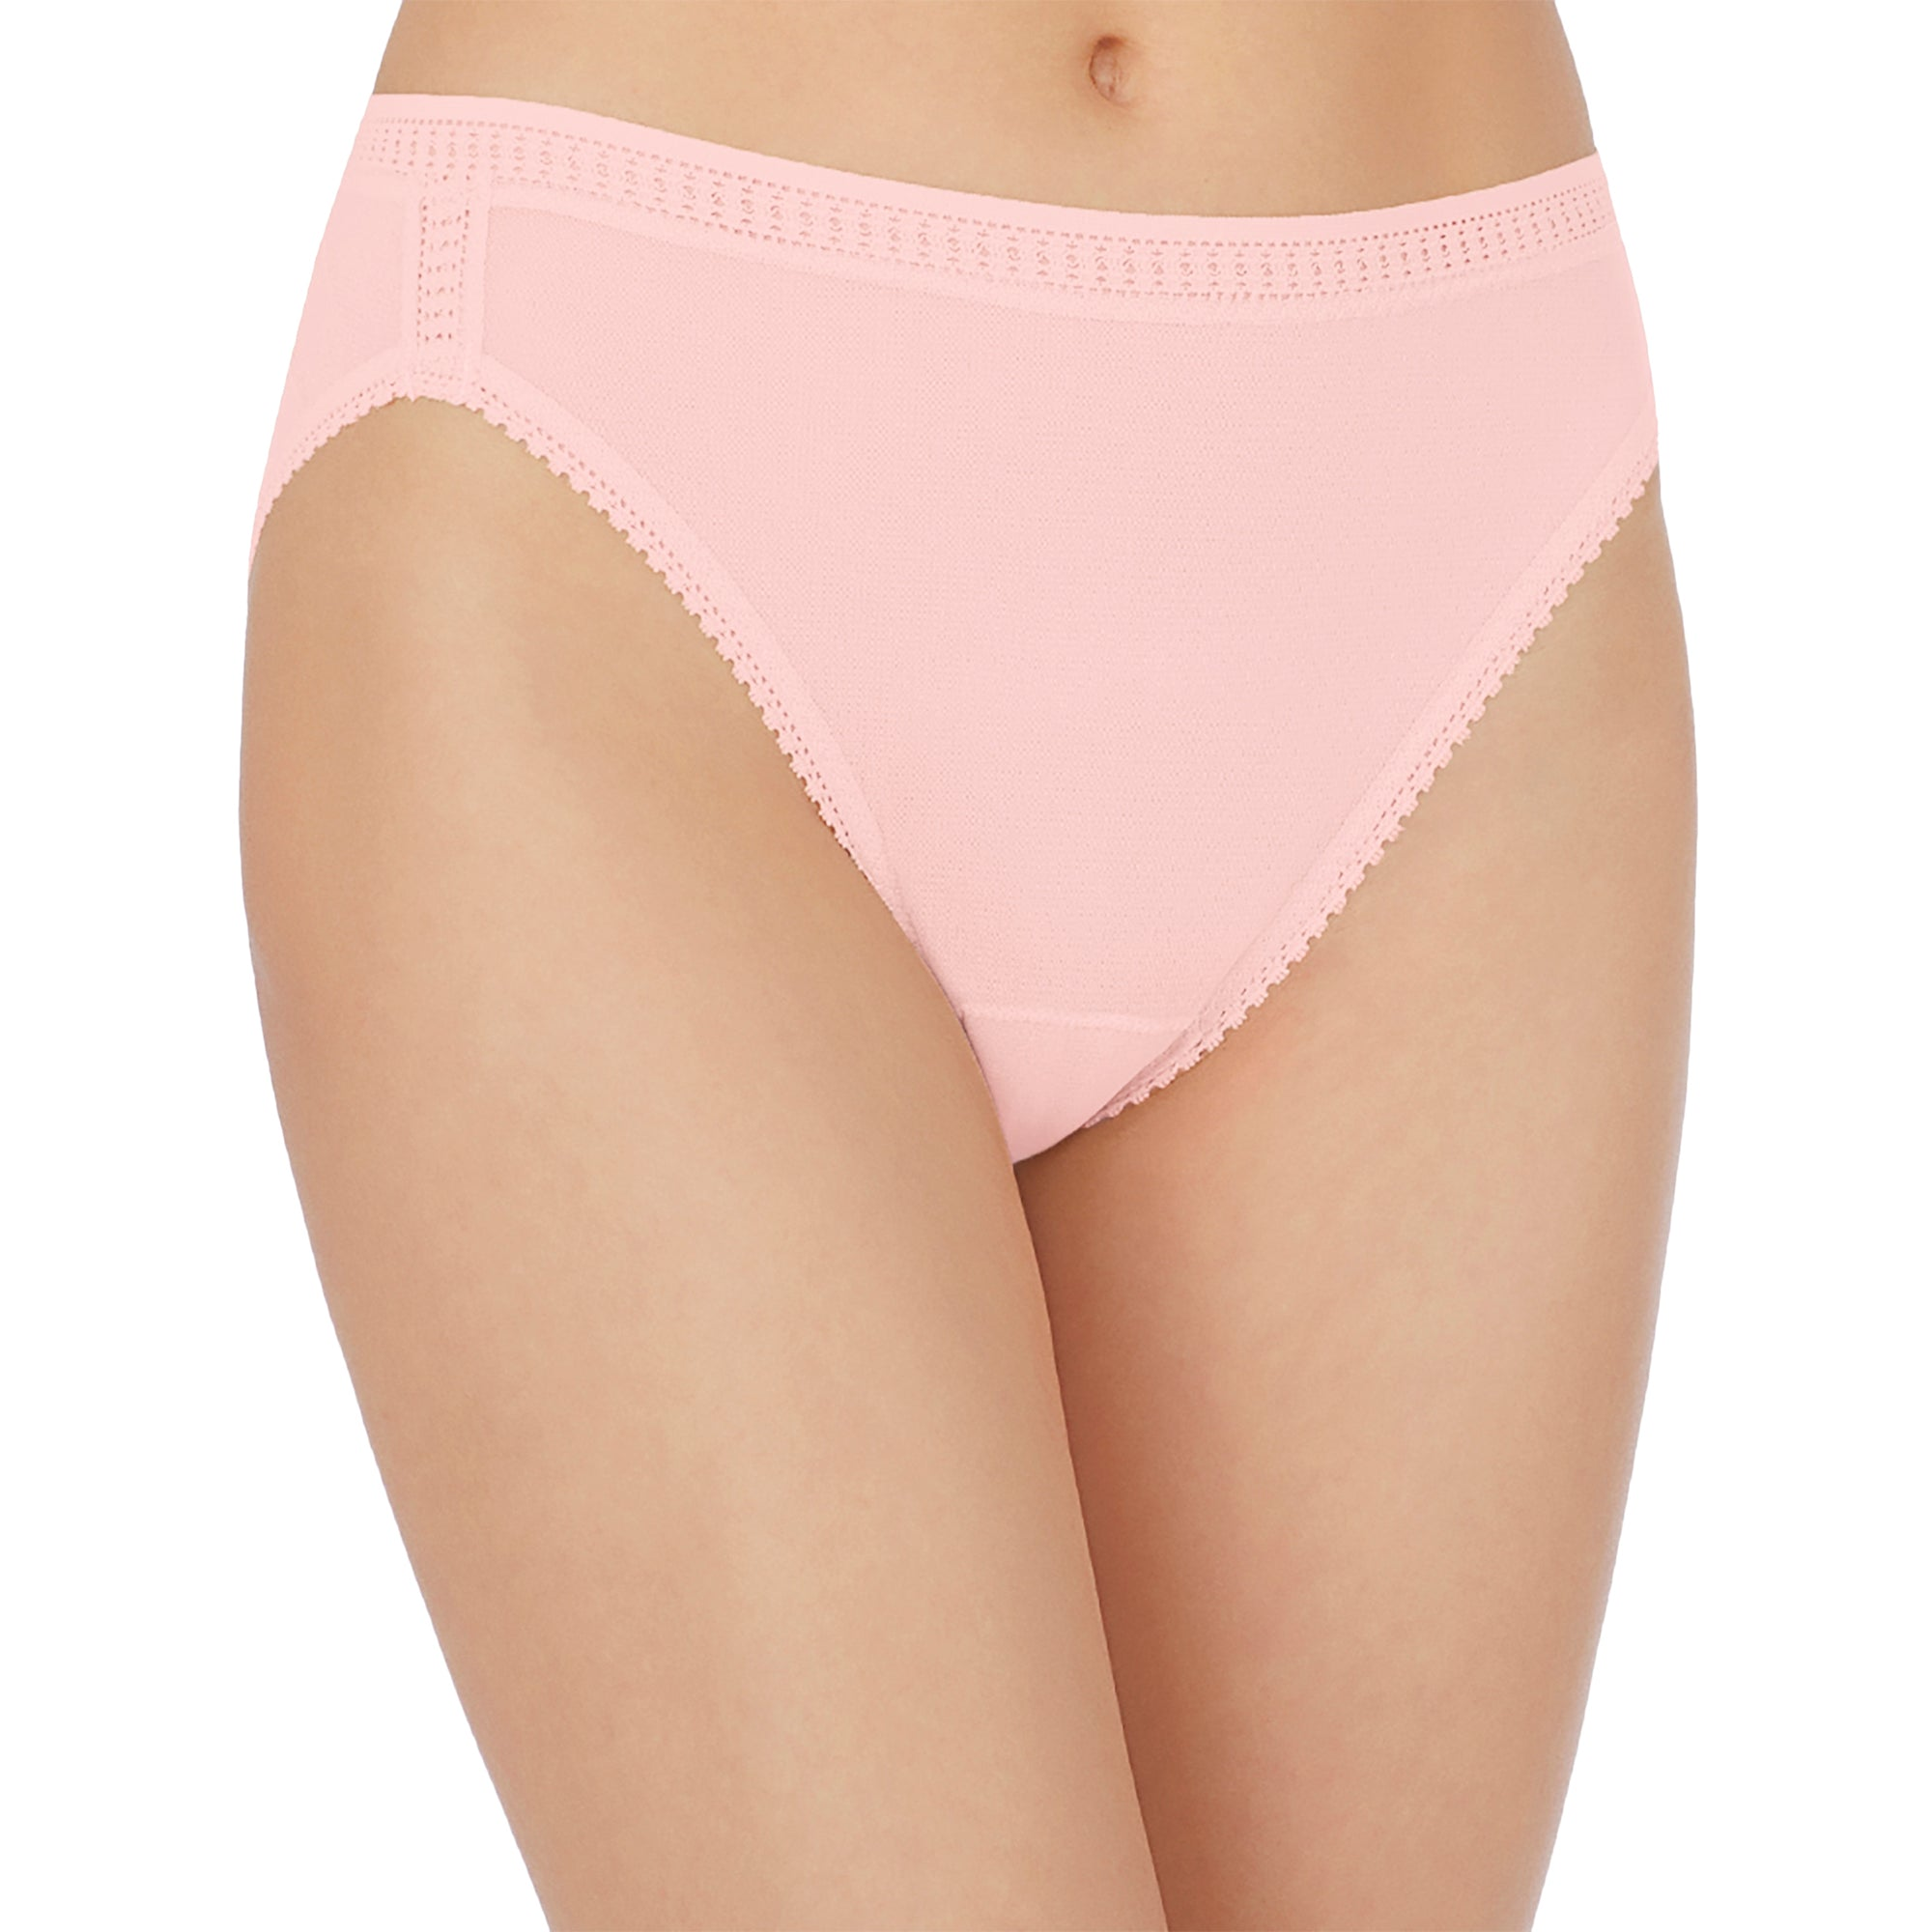 Gossamer Mesh Hi‒Cut Brief - Blush